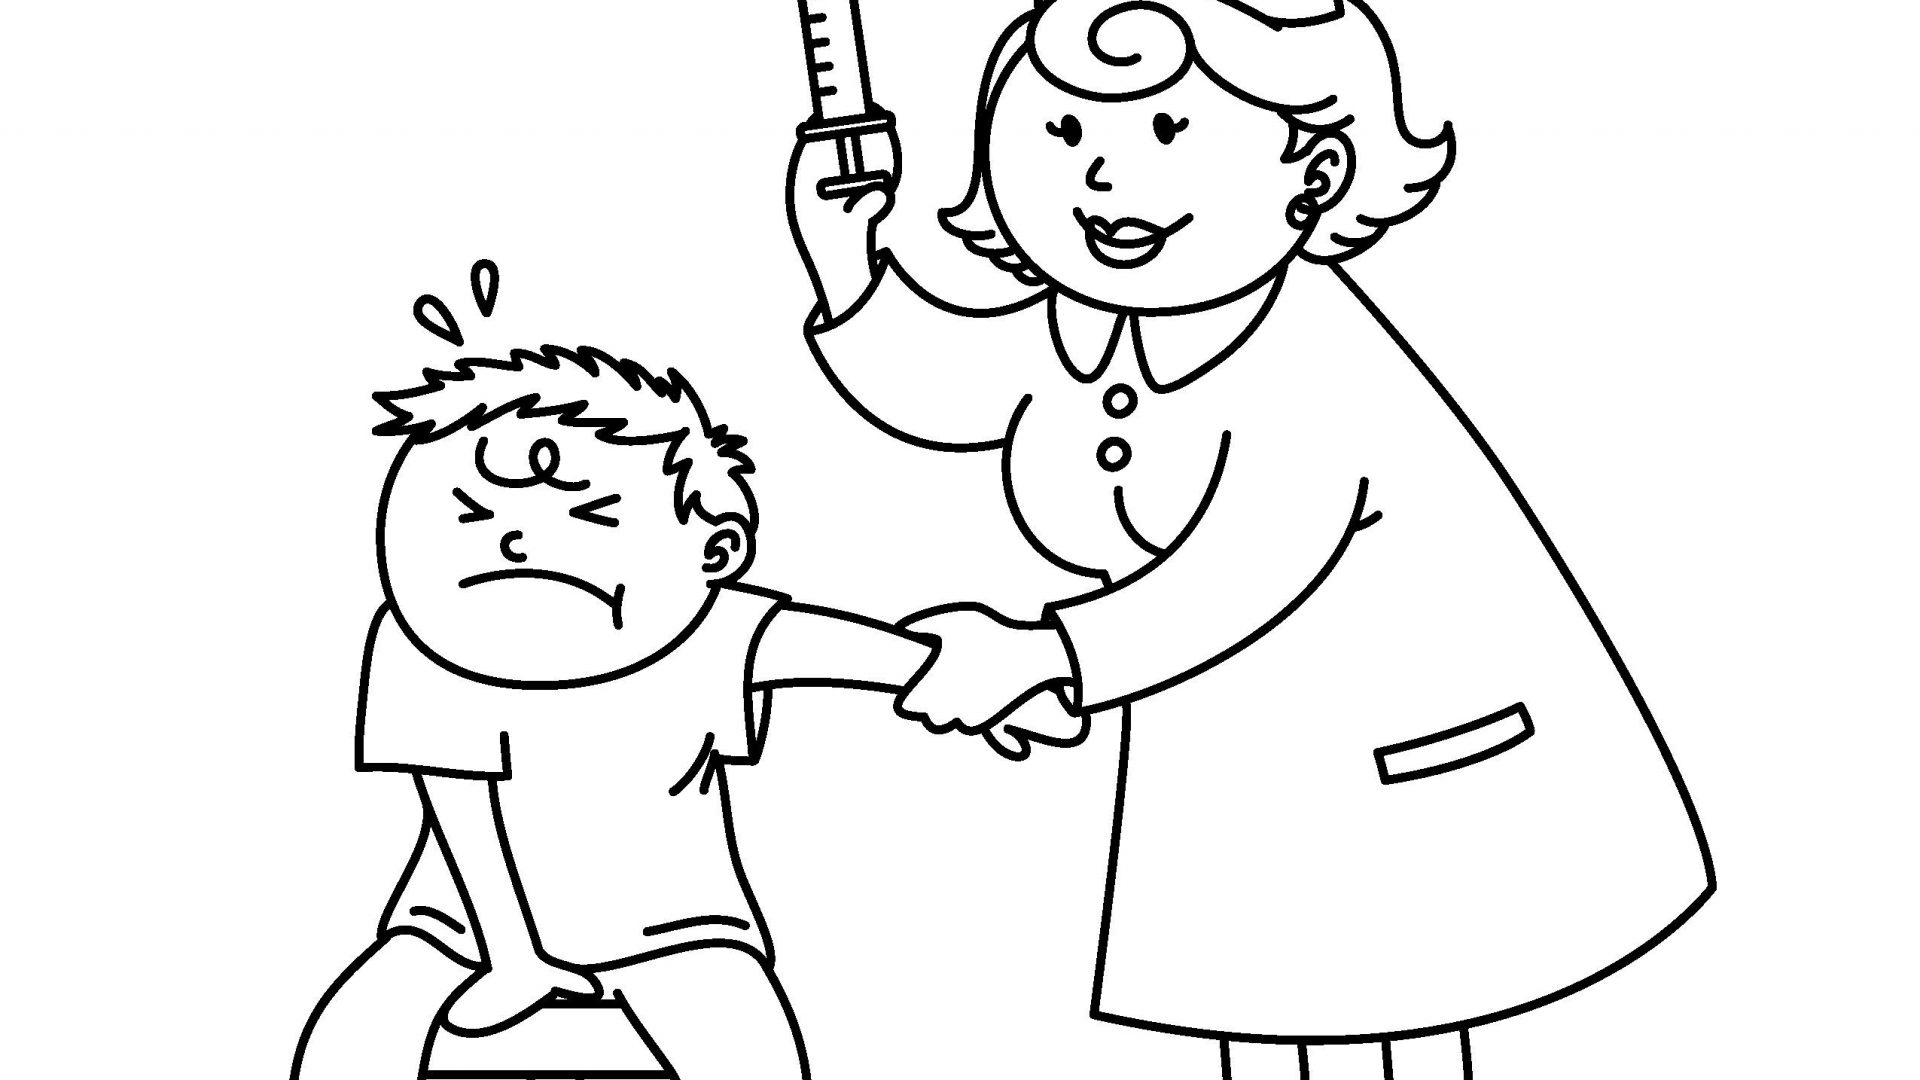 Line Drawing Nurse : Nurse cartoon drawing at getdrawings free for